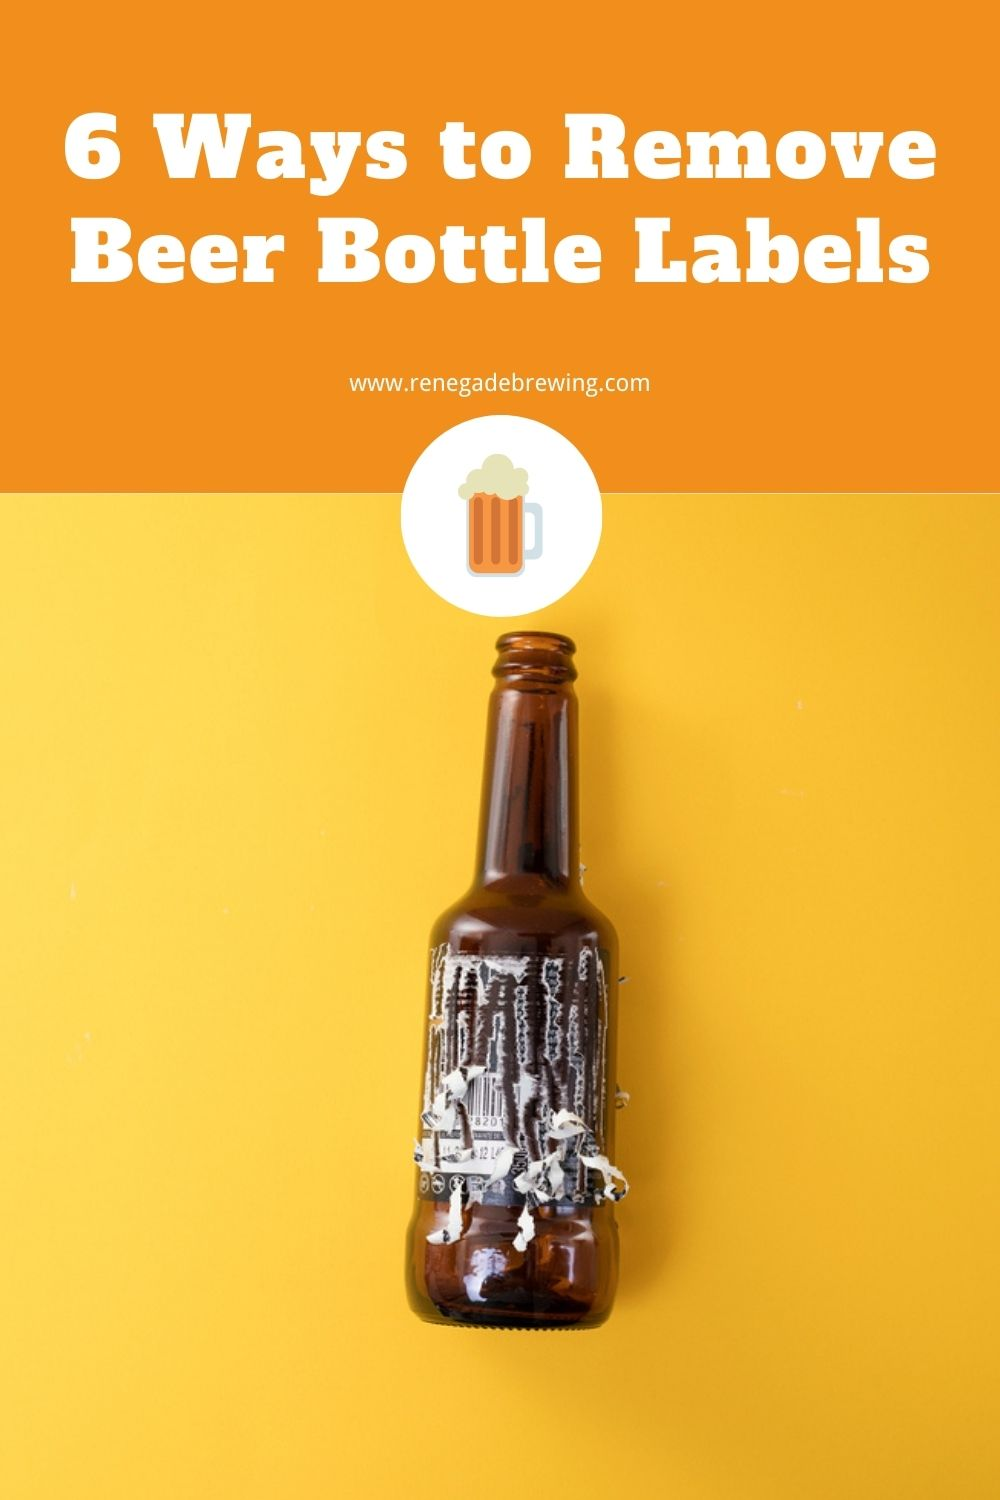 6 Ways to Remove Beer Bottle Labels 1